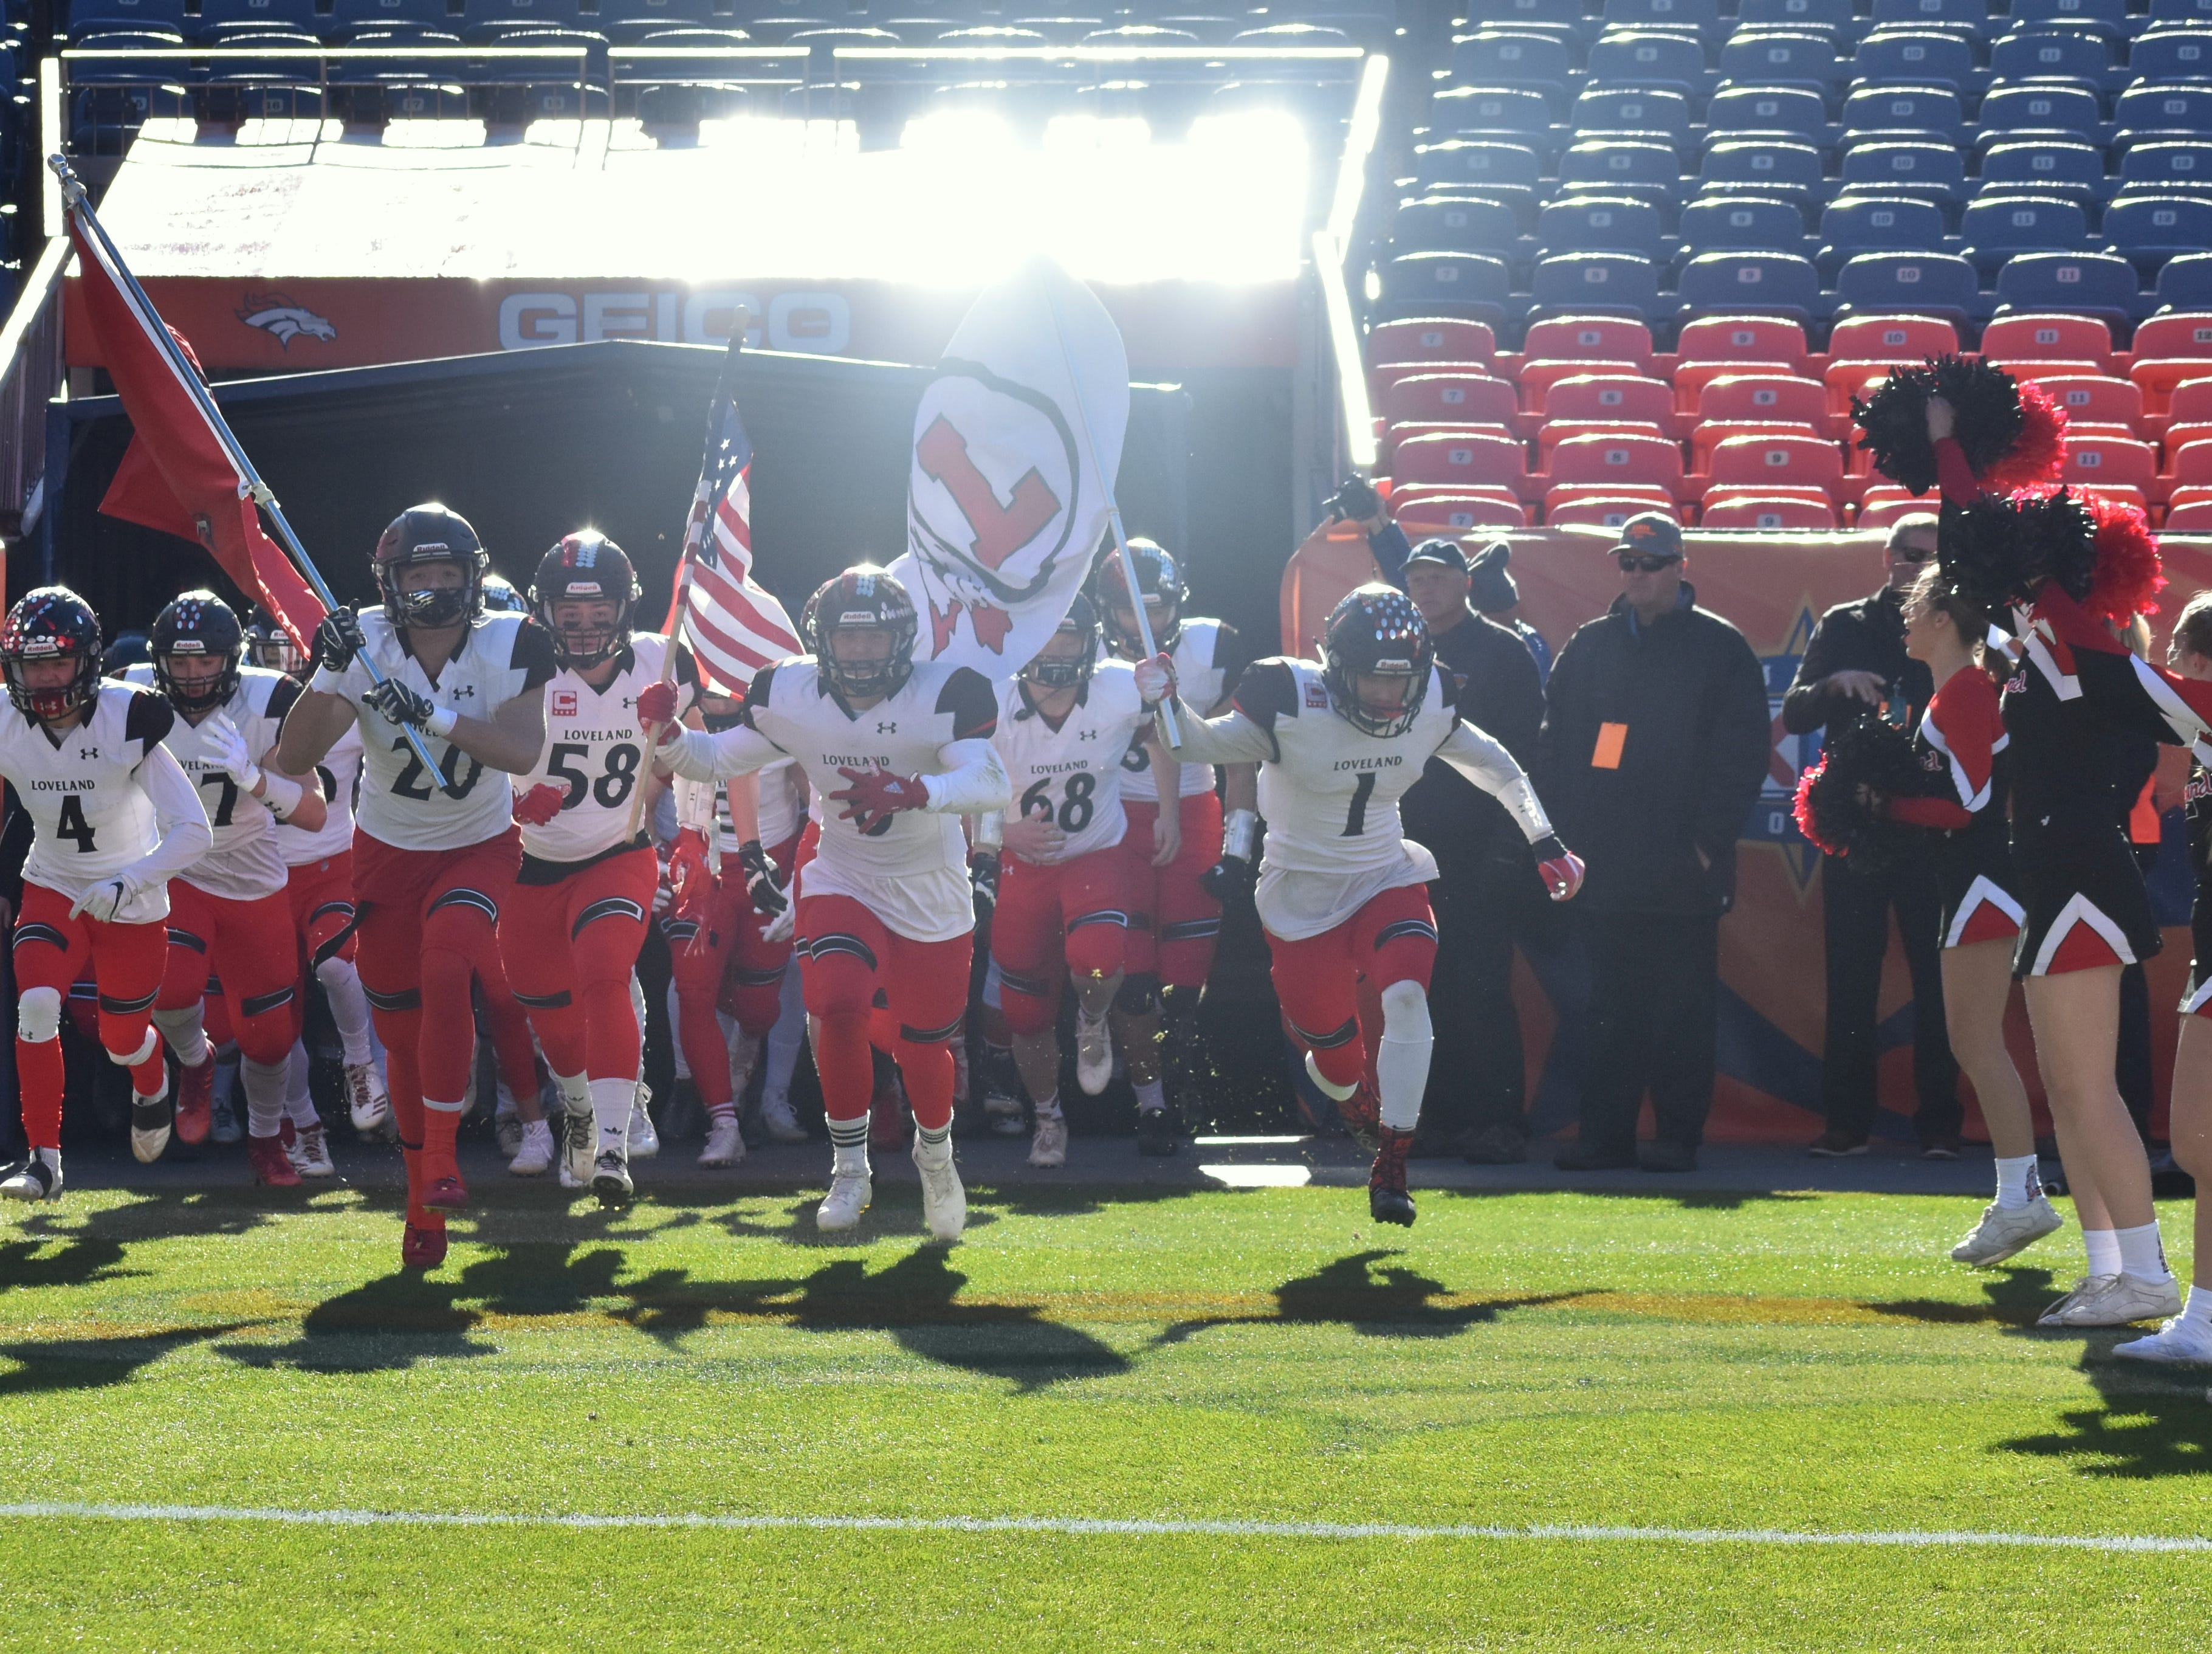 Loveland High School's football team takes the field Saturday for the Class 4A state title game at Broncos Stadium at Mile High.